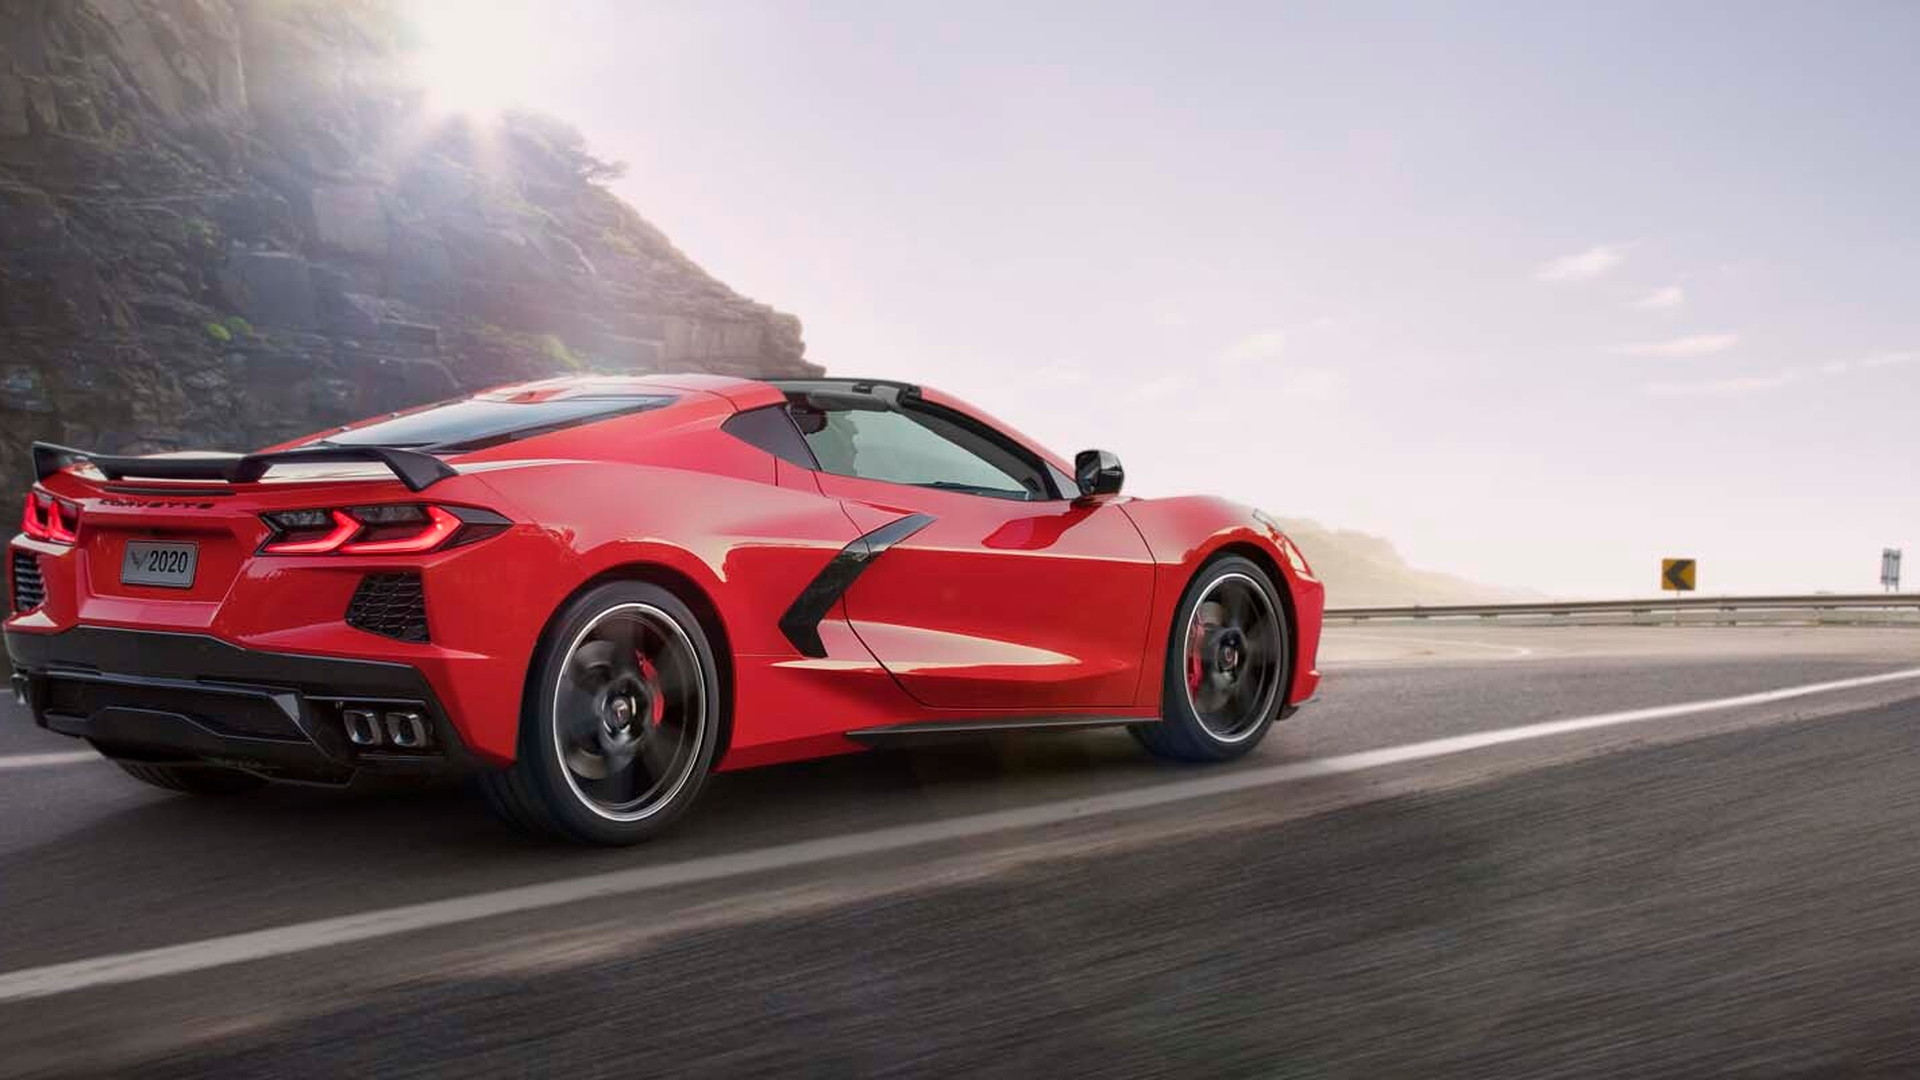 2020 Chevy Corvette Stingray Buyers Can Customize Vin For A Price